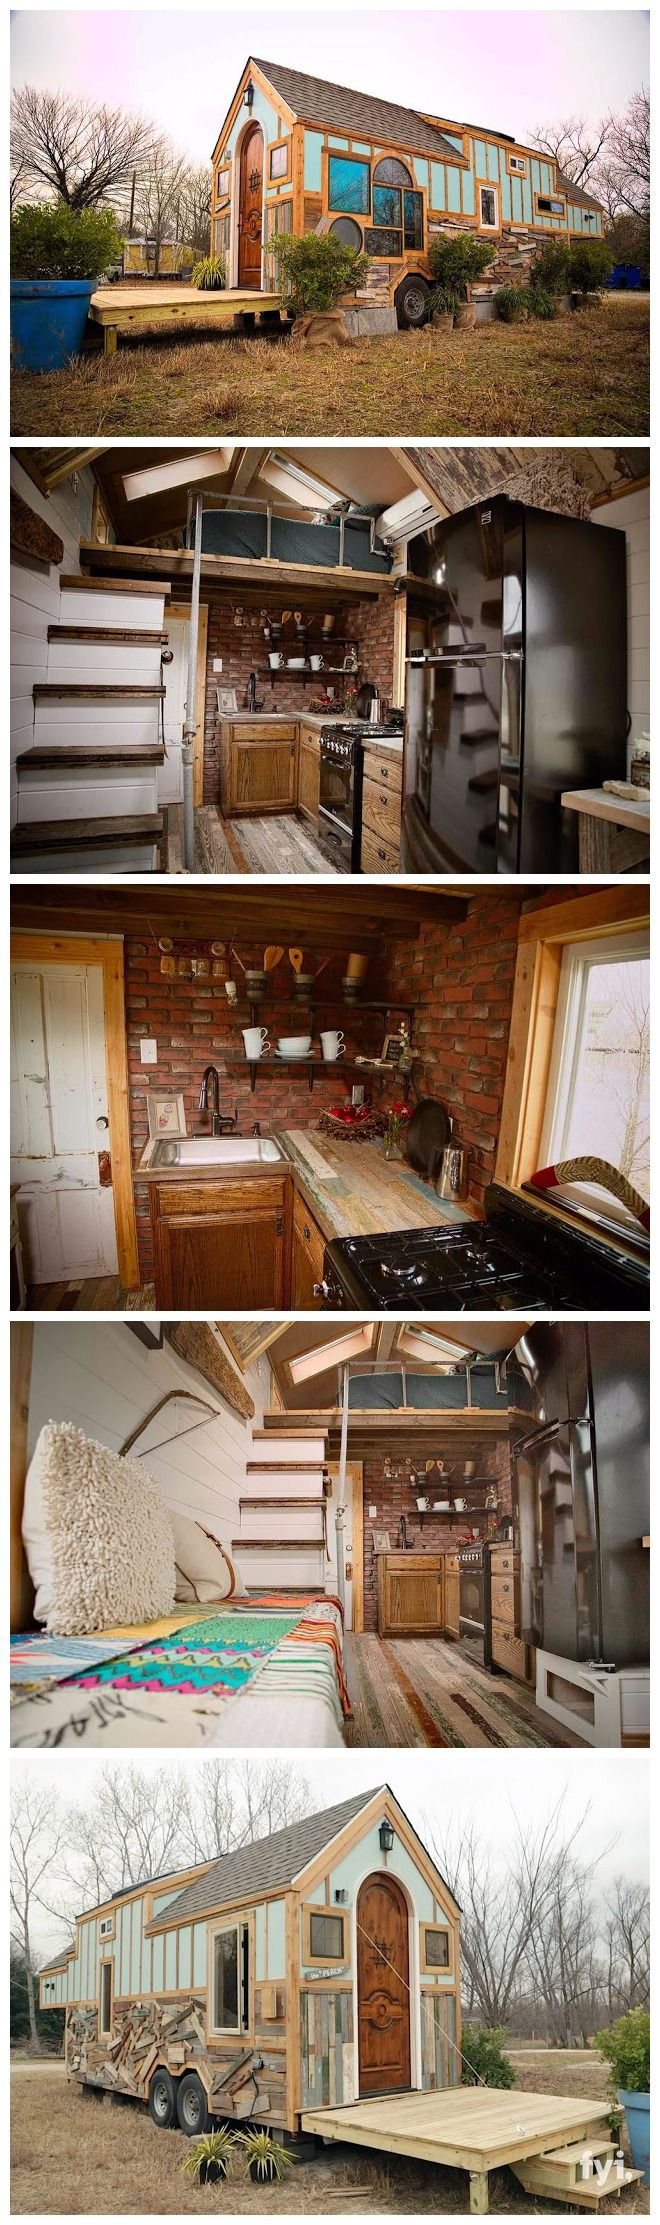 50+ Little Houses You won't Believe Are Real | Decoration Goals | Page 23